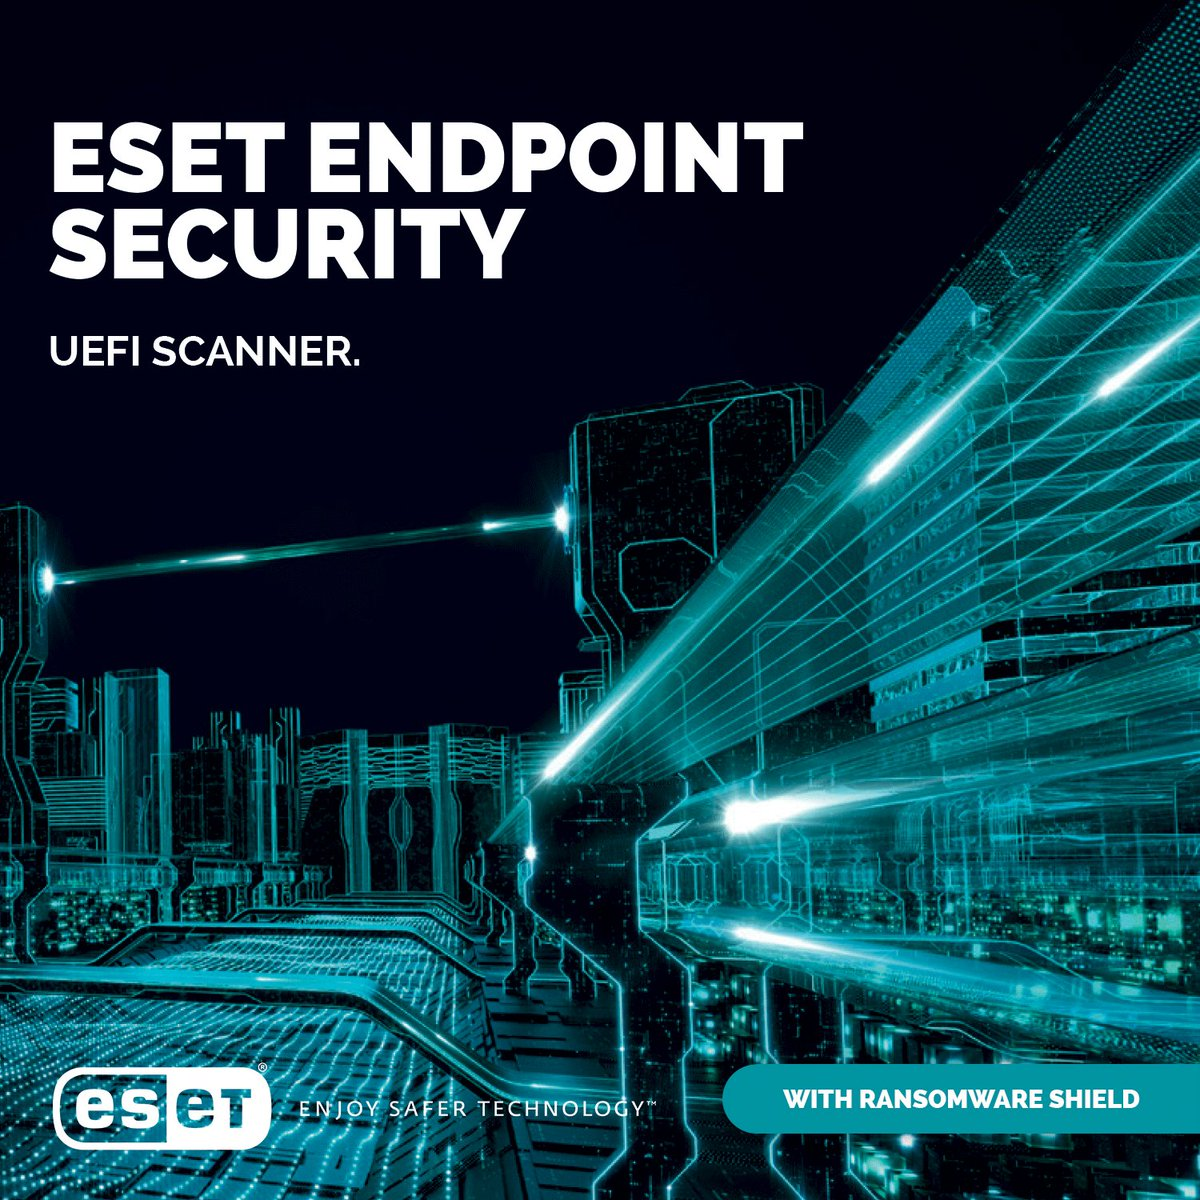 ESET Southern Africa on Twitter: